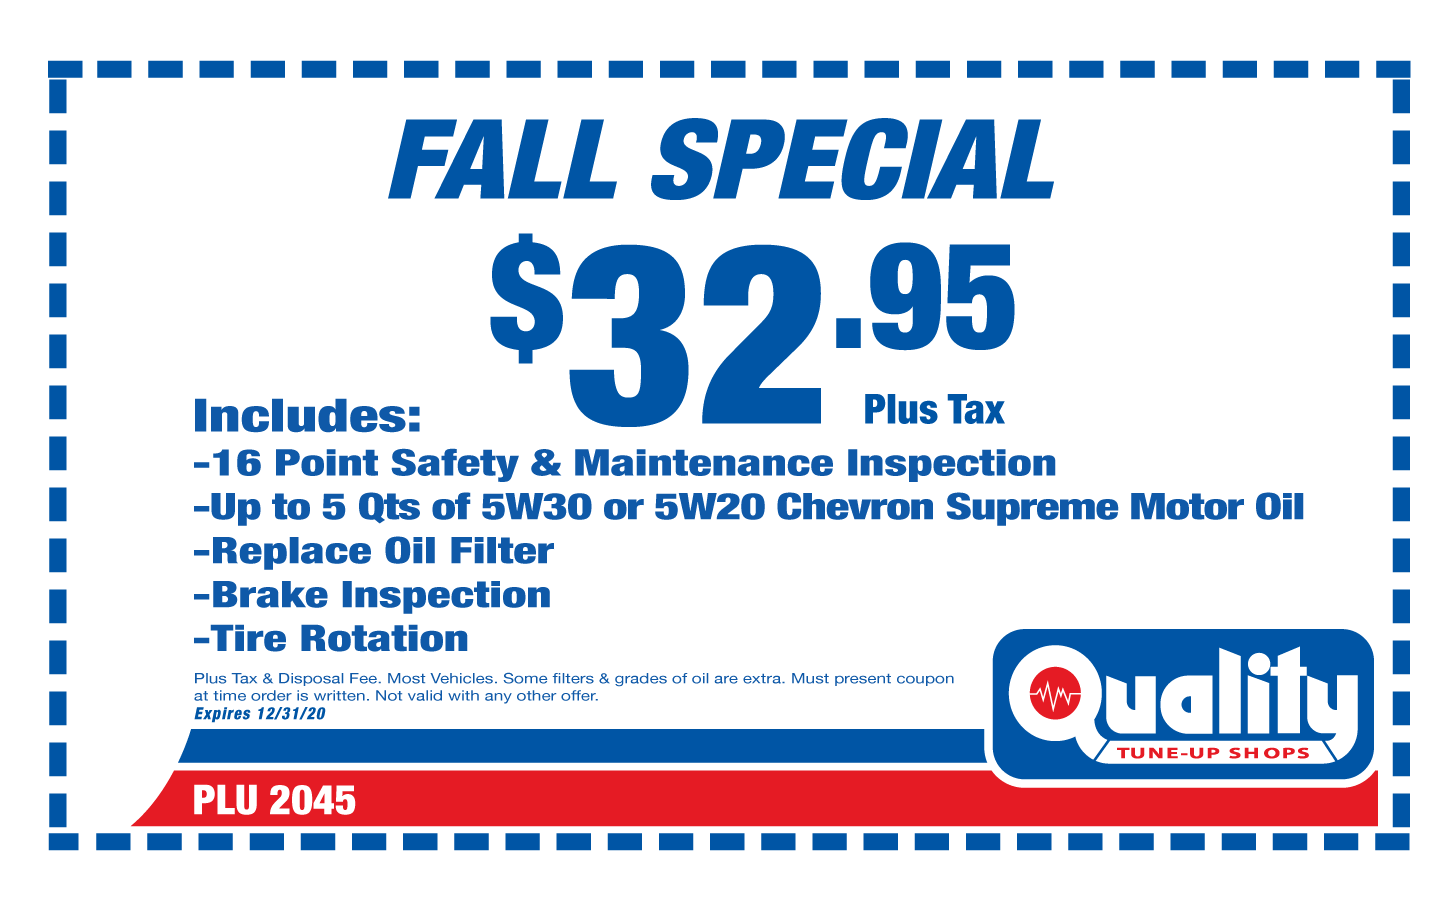 Fall Special Oil Change and Tire Rotation